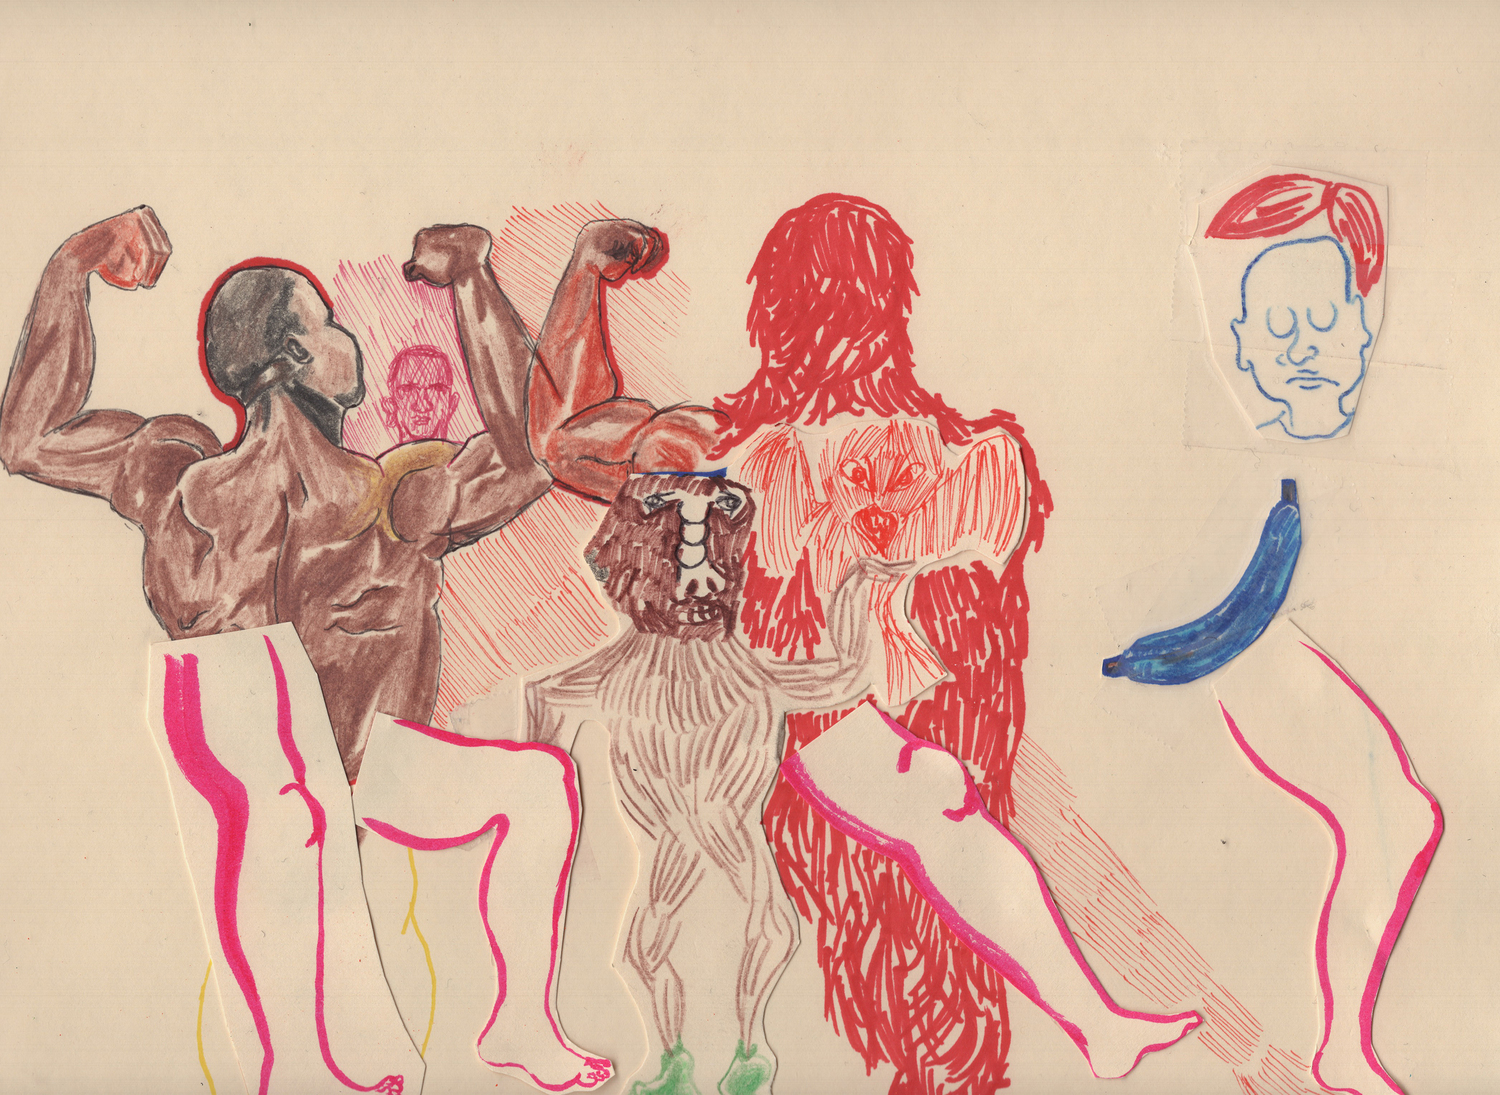 Show Muscle, 2020, Colour pencil, collage, marker, graphite, scotch tape, and double sided tape on paper, 22.9 x 30.5 cm, 9 x 12 in